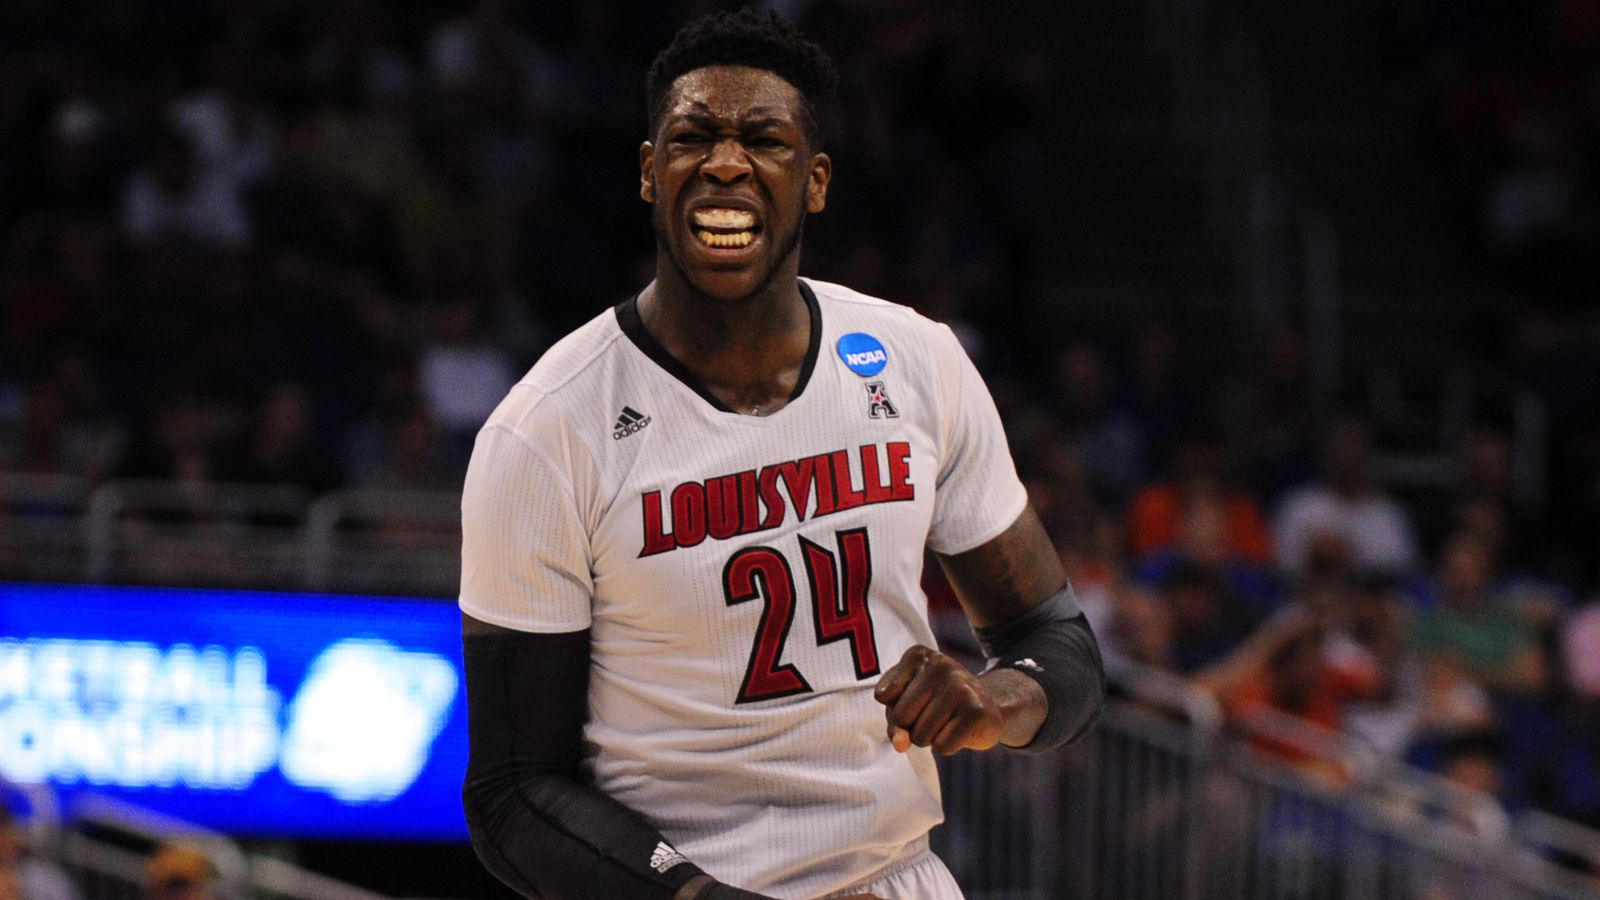 The Louisville Cardinals will travel on the road to the Cassell Coliseum in Blacksburg Virginia on Monday evening as they get set for an Atlantic Coast Conference